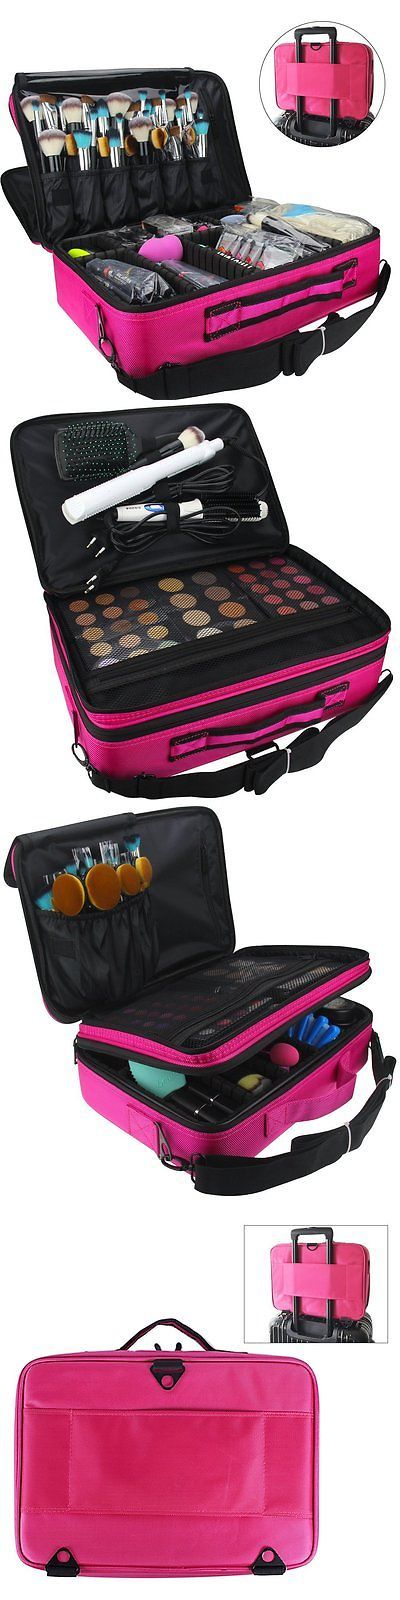 Beauty Makeup: Travelmall Cosmetic Case Makeup Box Organizer Bag Professional Beauty Train Case BUY IT NOW ONLY: $66.12